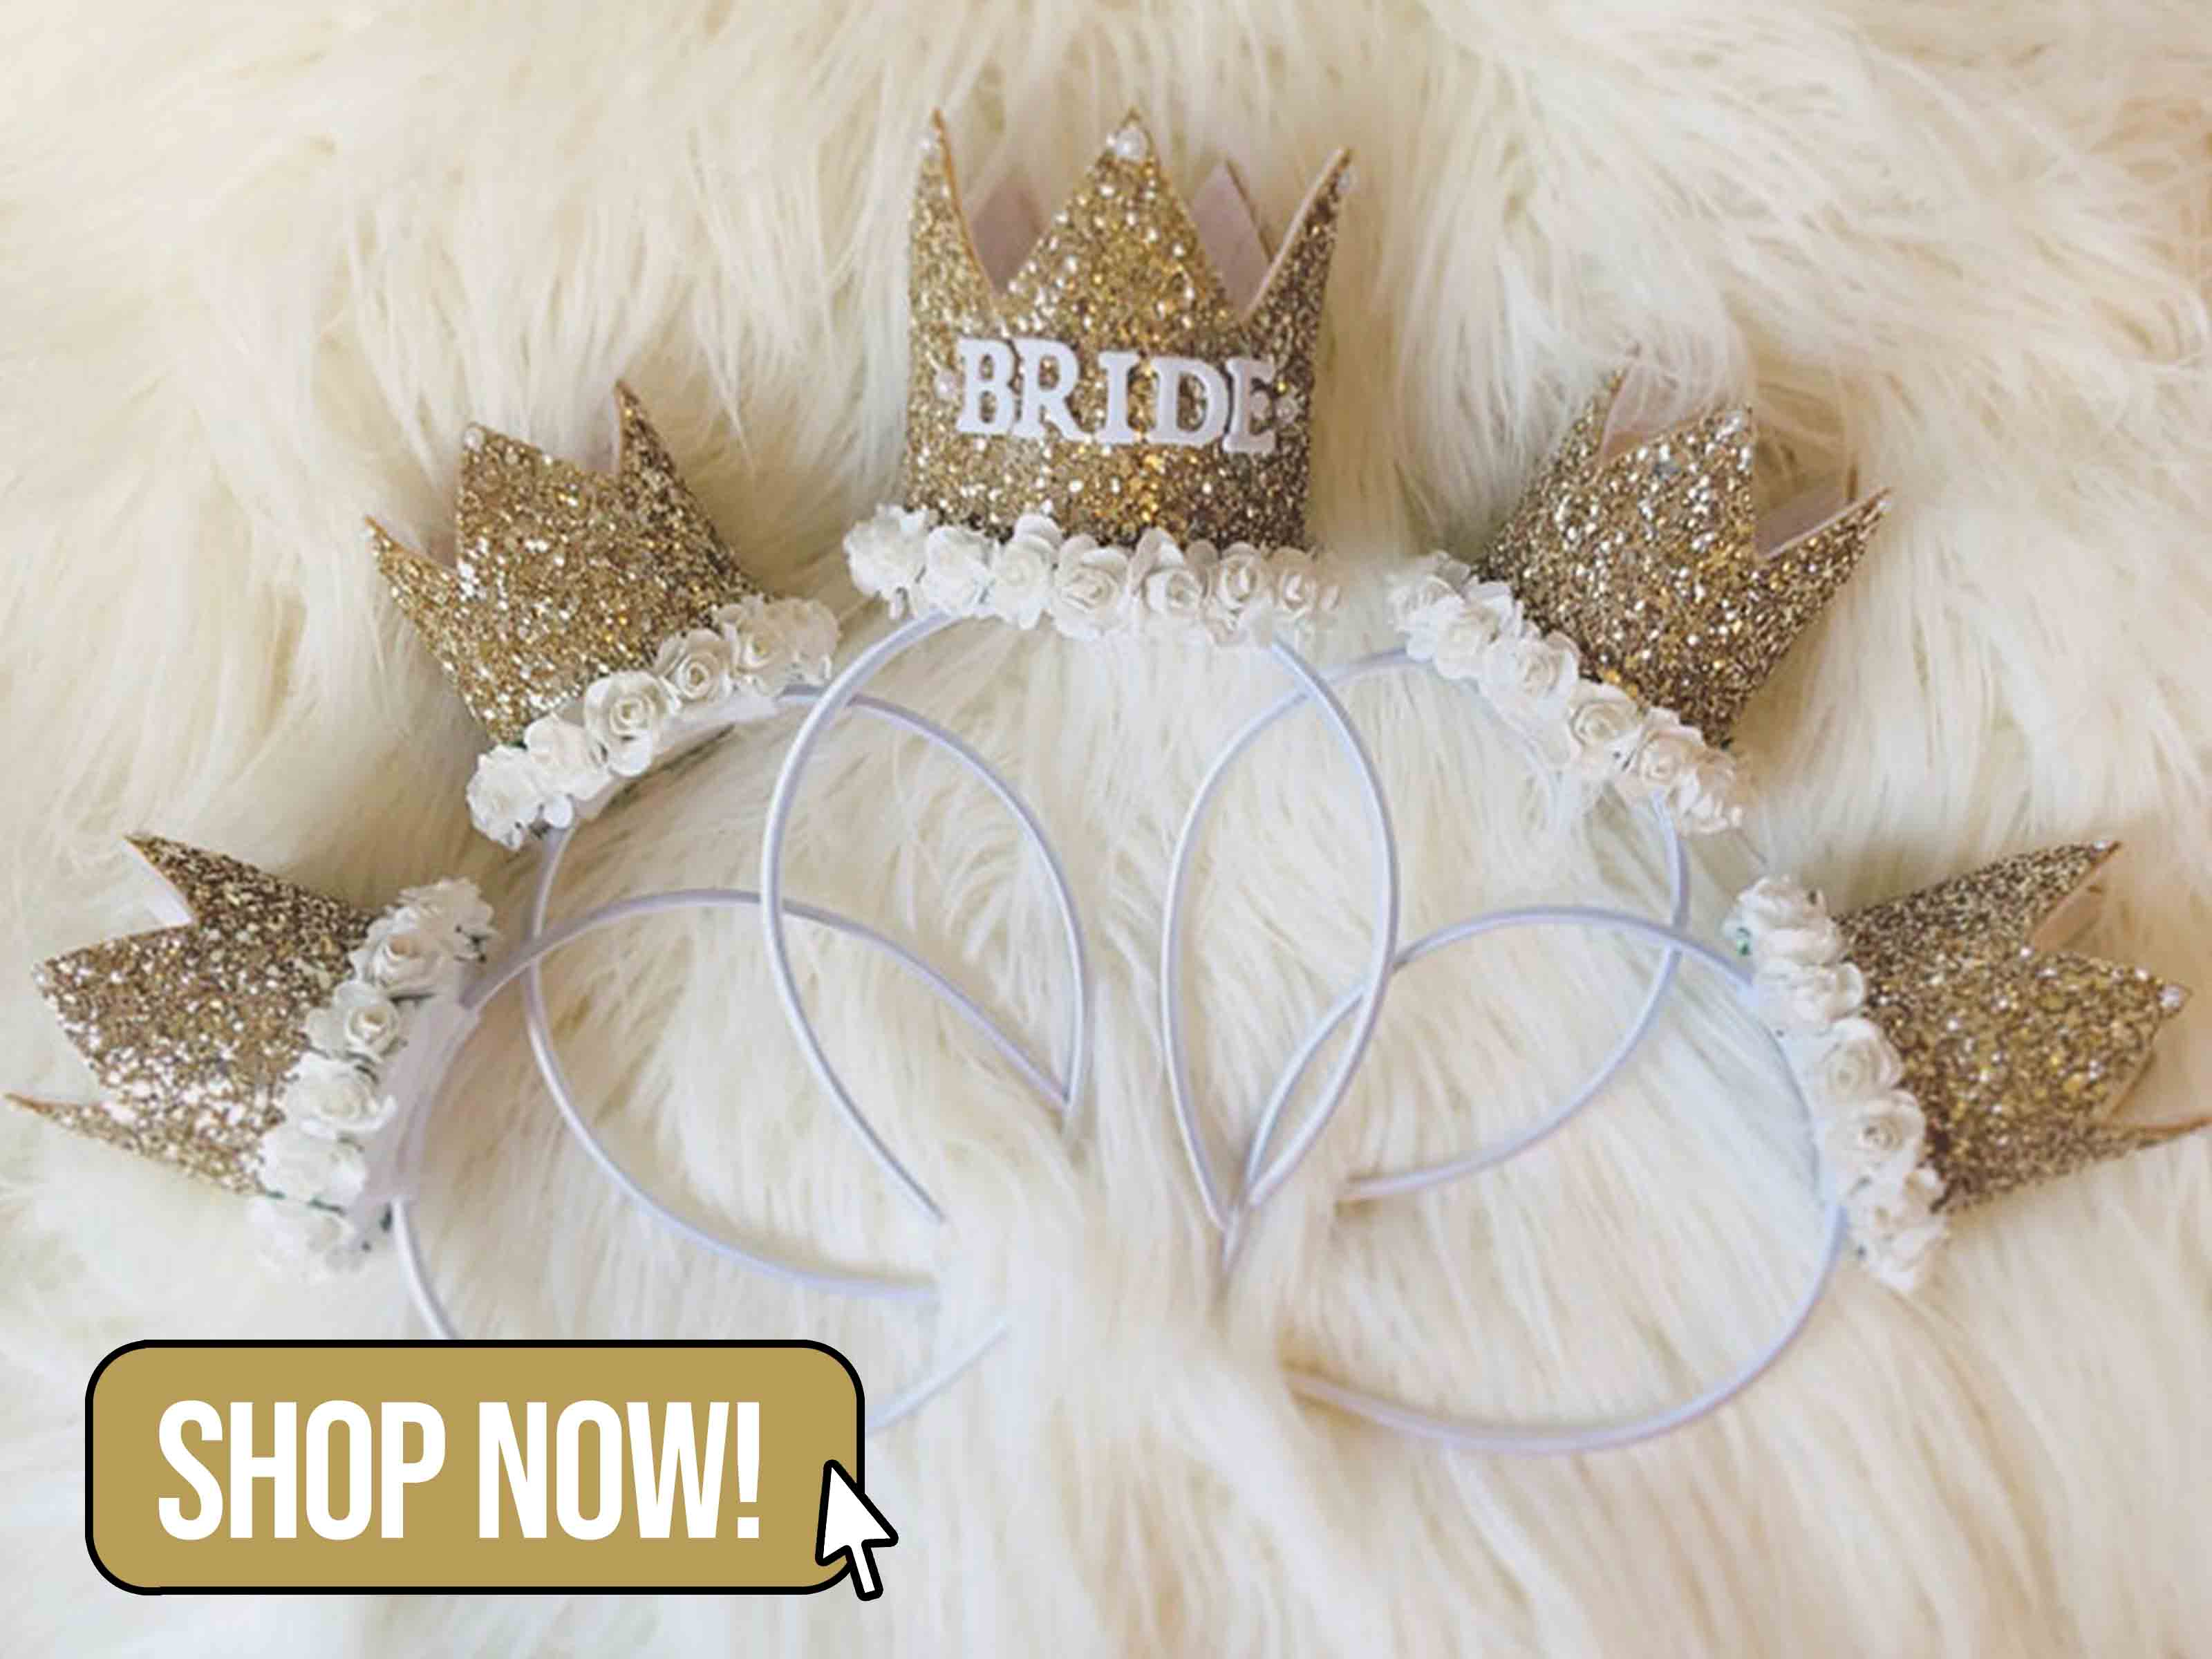 Gold Glitter Bride Crown With Matching Party Crowns - BunnyAndBearBows